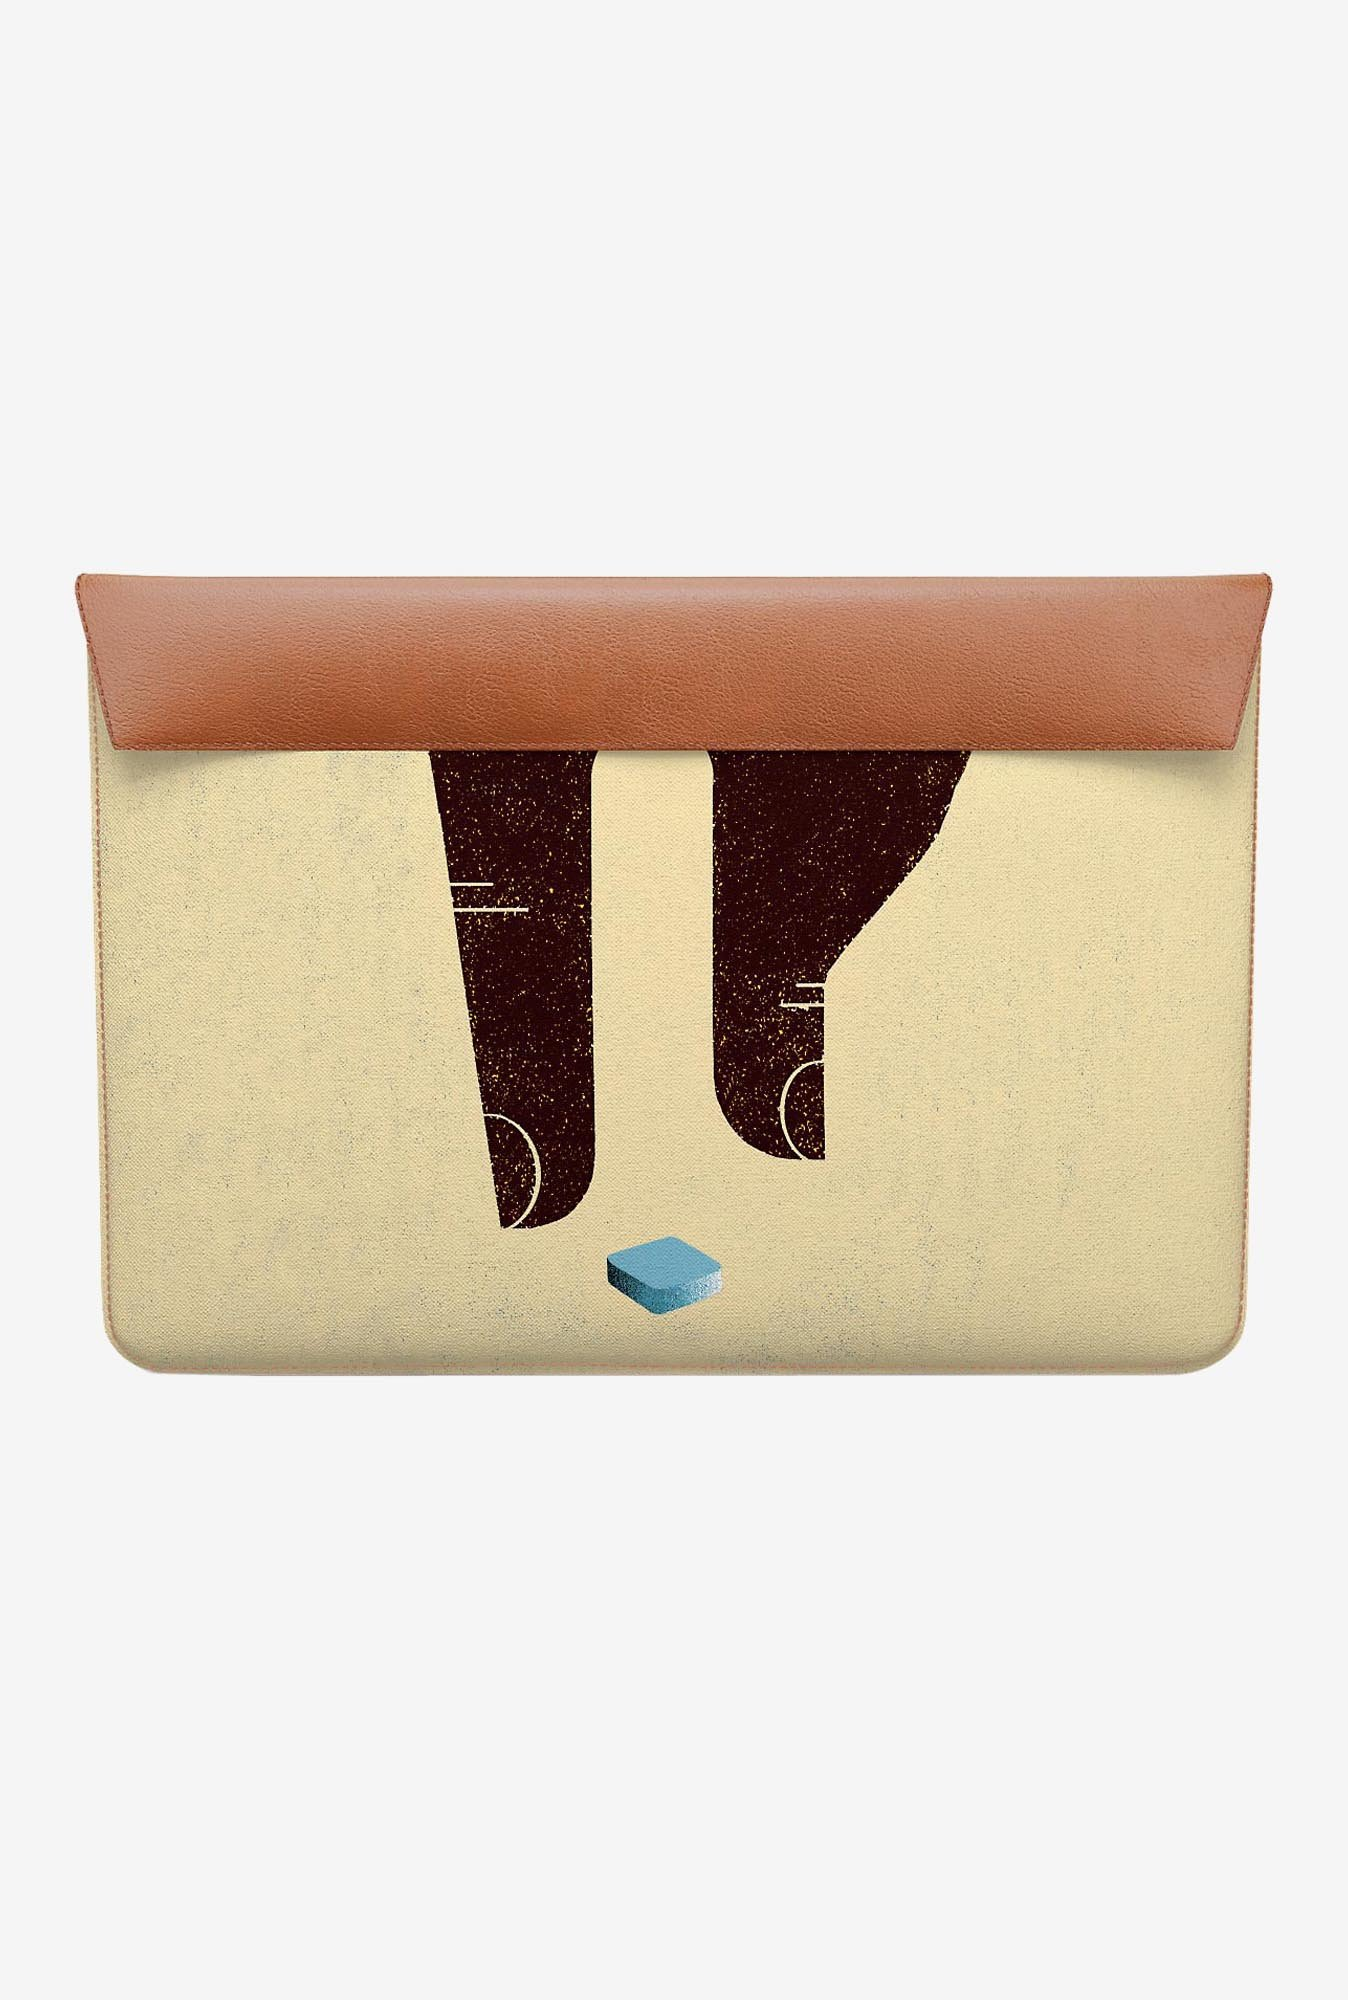 DailyObjects Enhancer MacBook Air 11 Envelope Sleeve